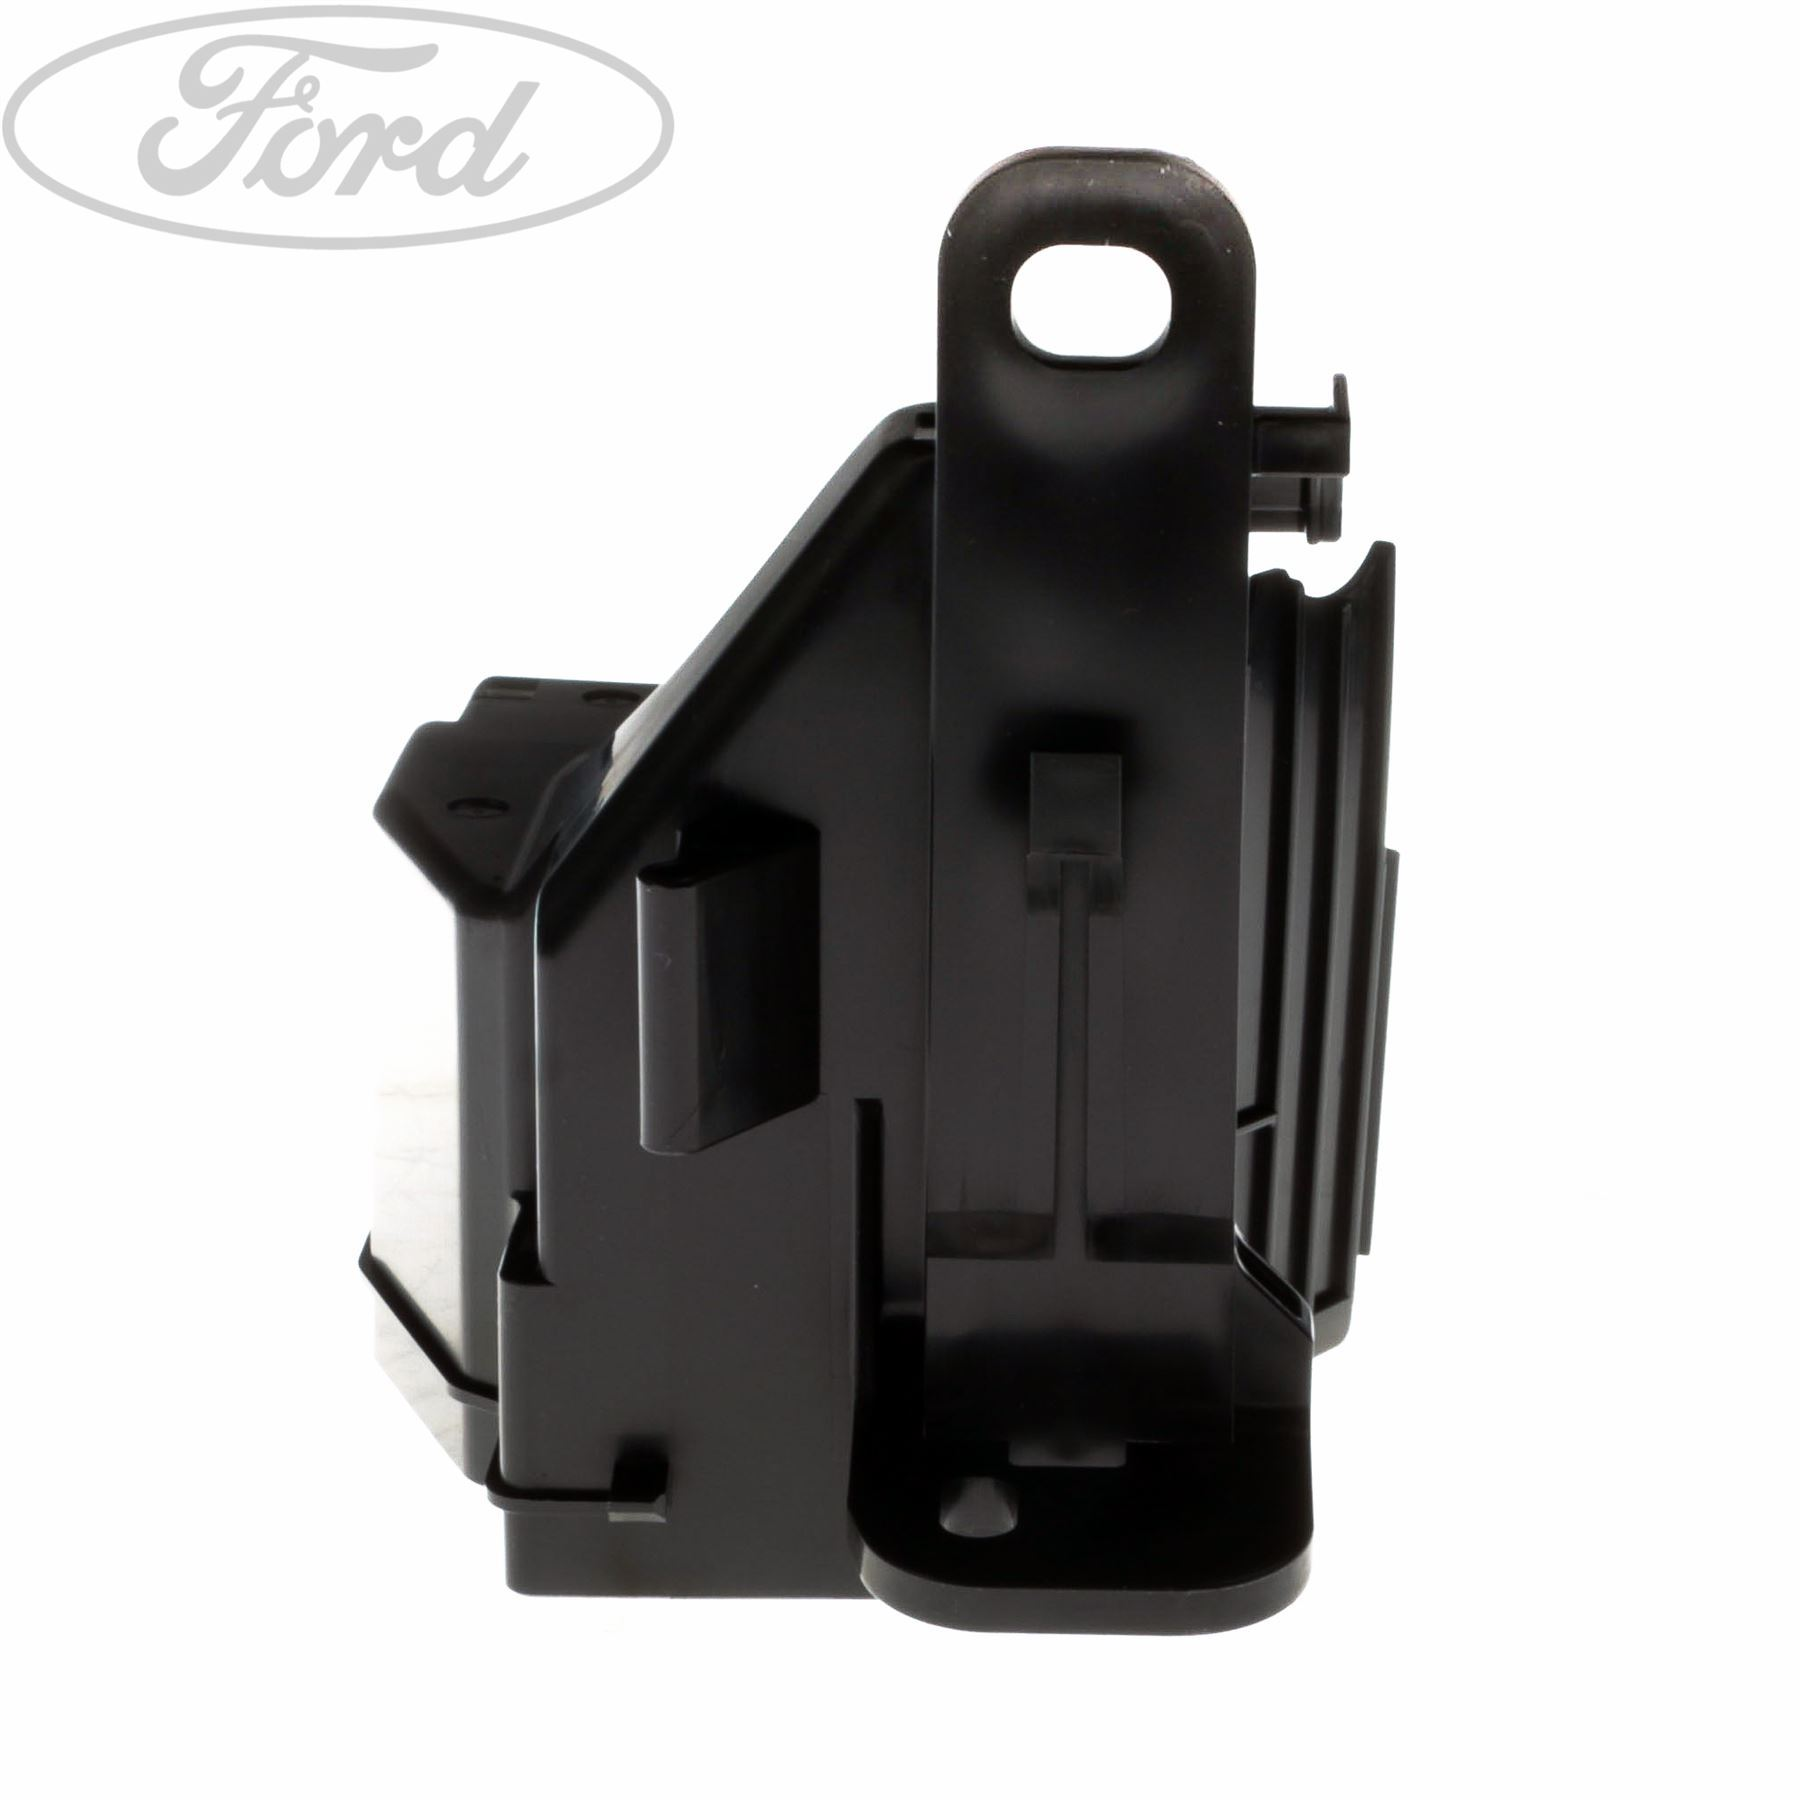 hight resolution of details about genuine ford fiesta mk7 fuse junction panel housing 1523946